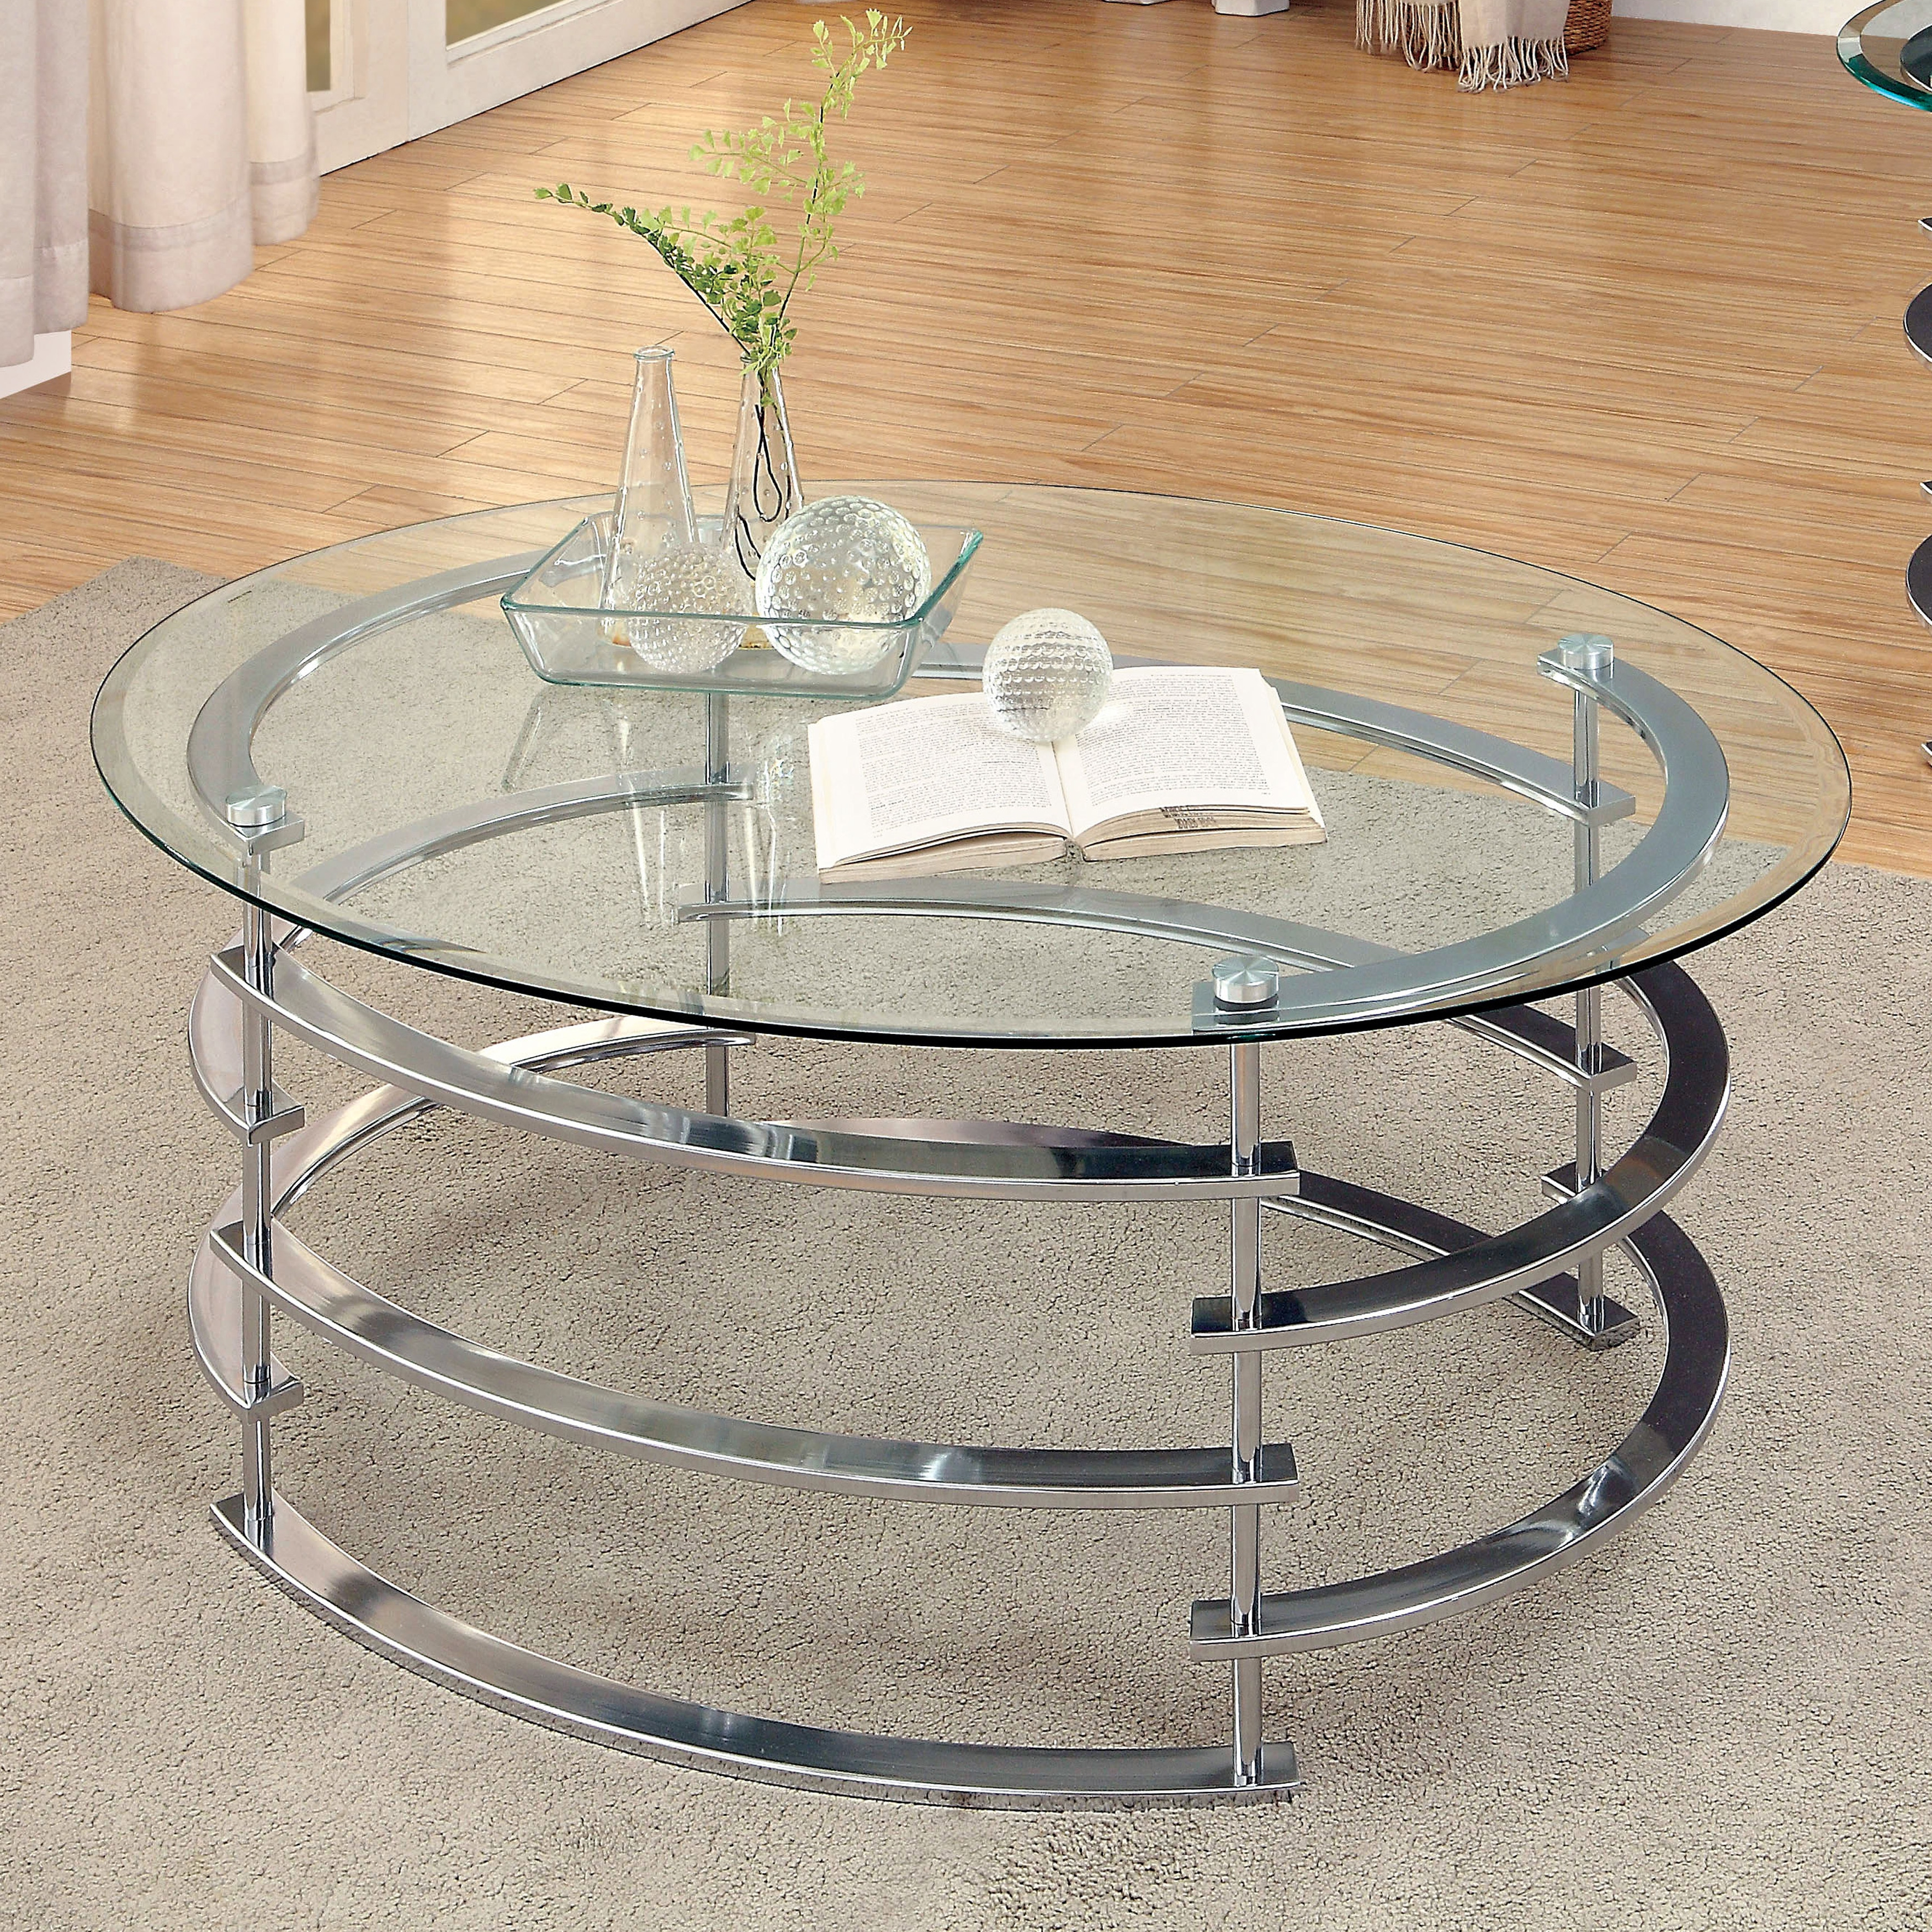 Silver Orchid Marcello Contemporary Glass Top Coffee Table Inside Well Known Silver Orchid Ipsen Round Coffee Tables With X Base (View 18 of 20)